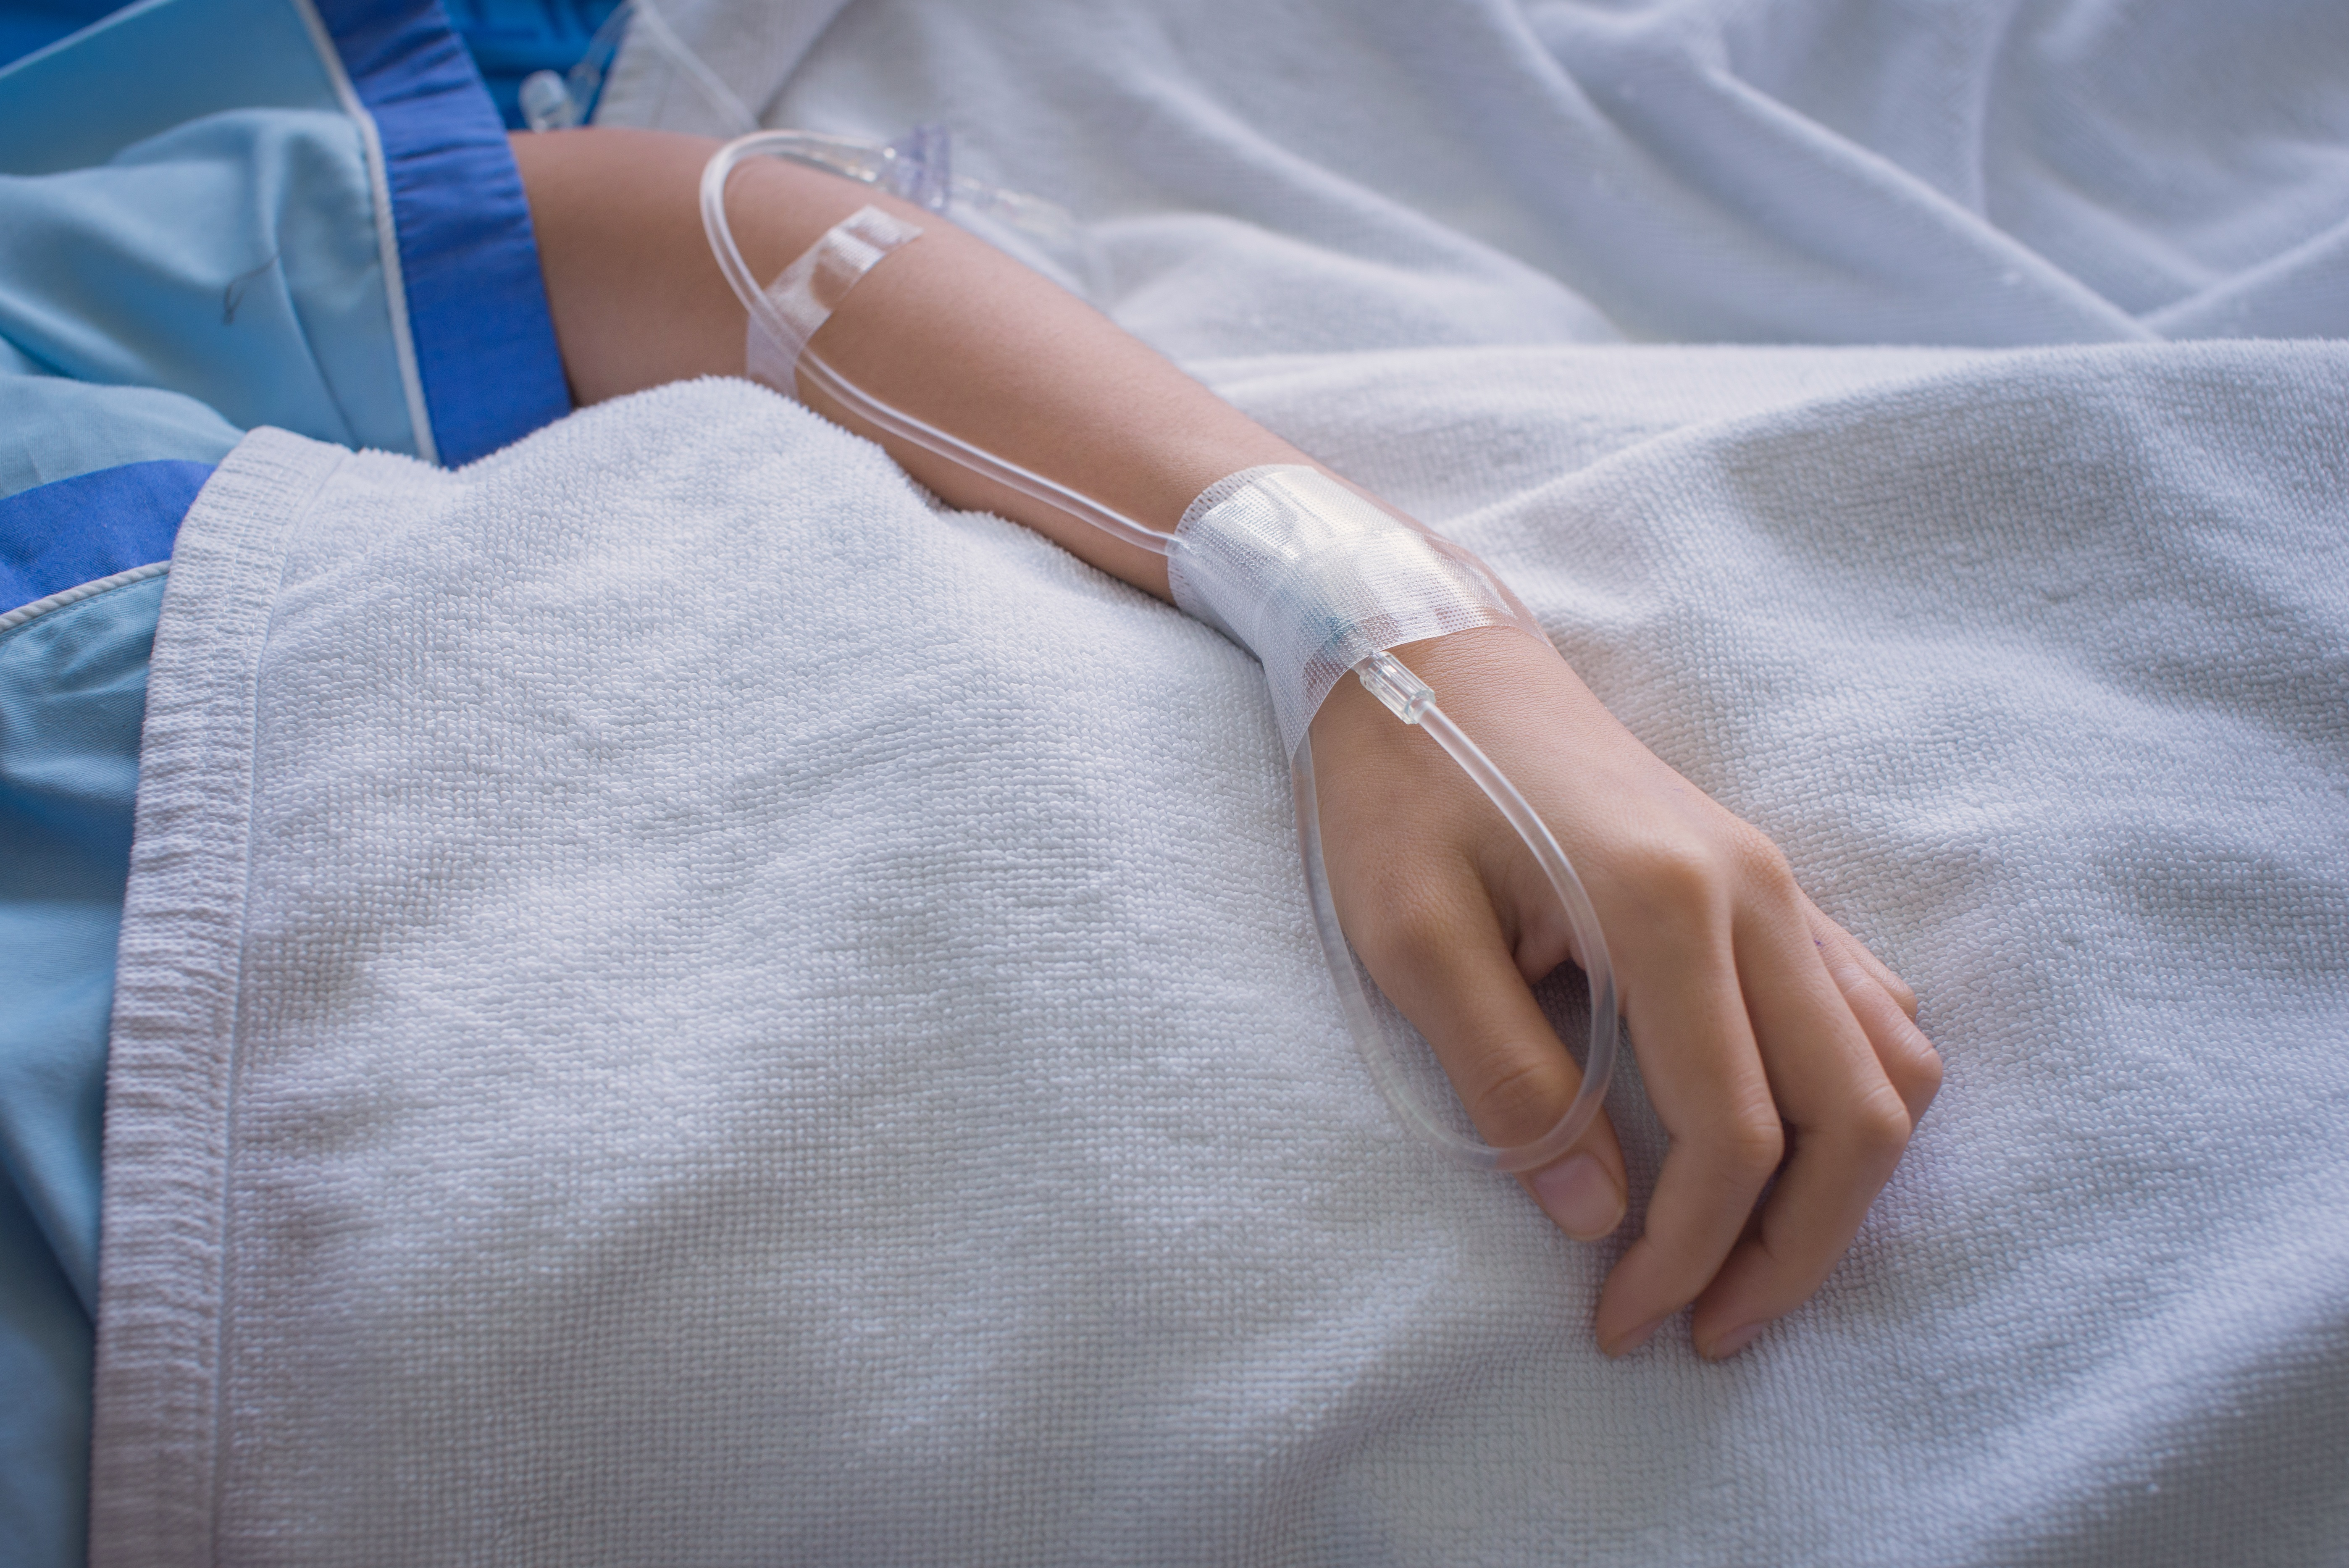 Researchers Offer Insight Into Complications For CF Patients Receiving Parenteral Antimicrobial Therapy